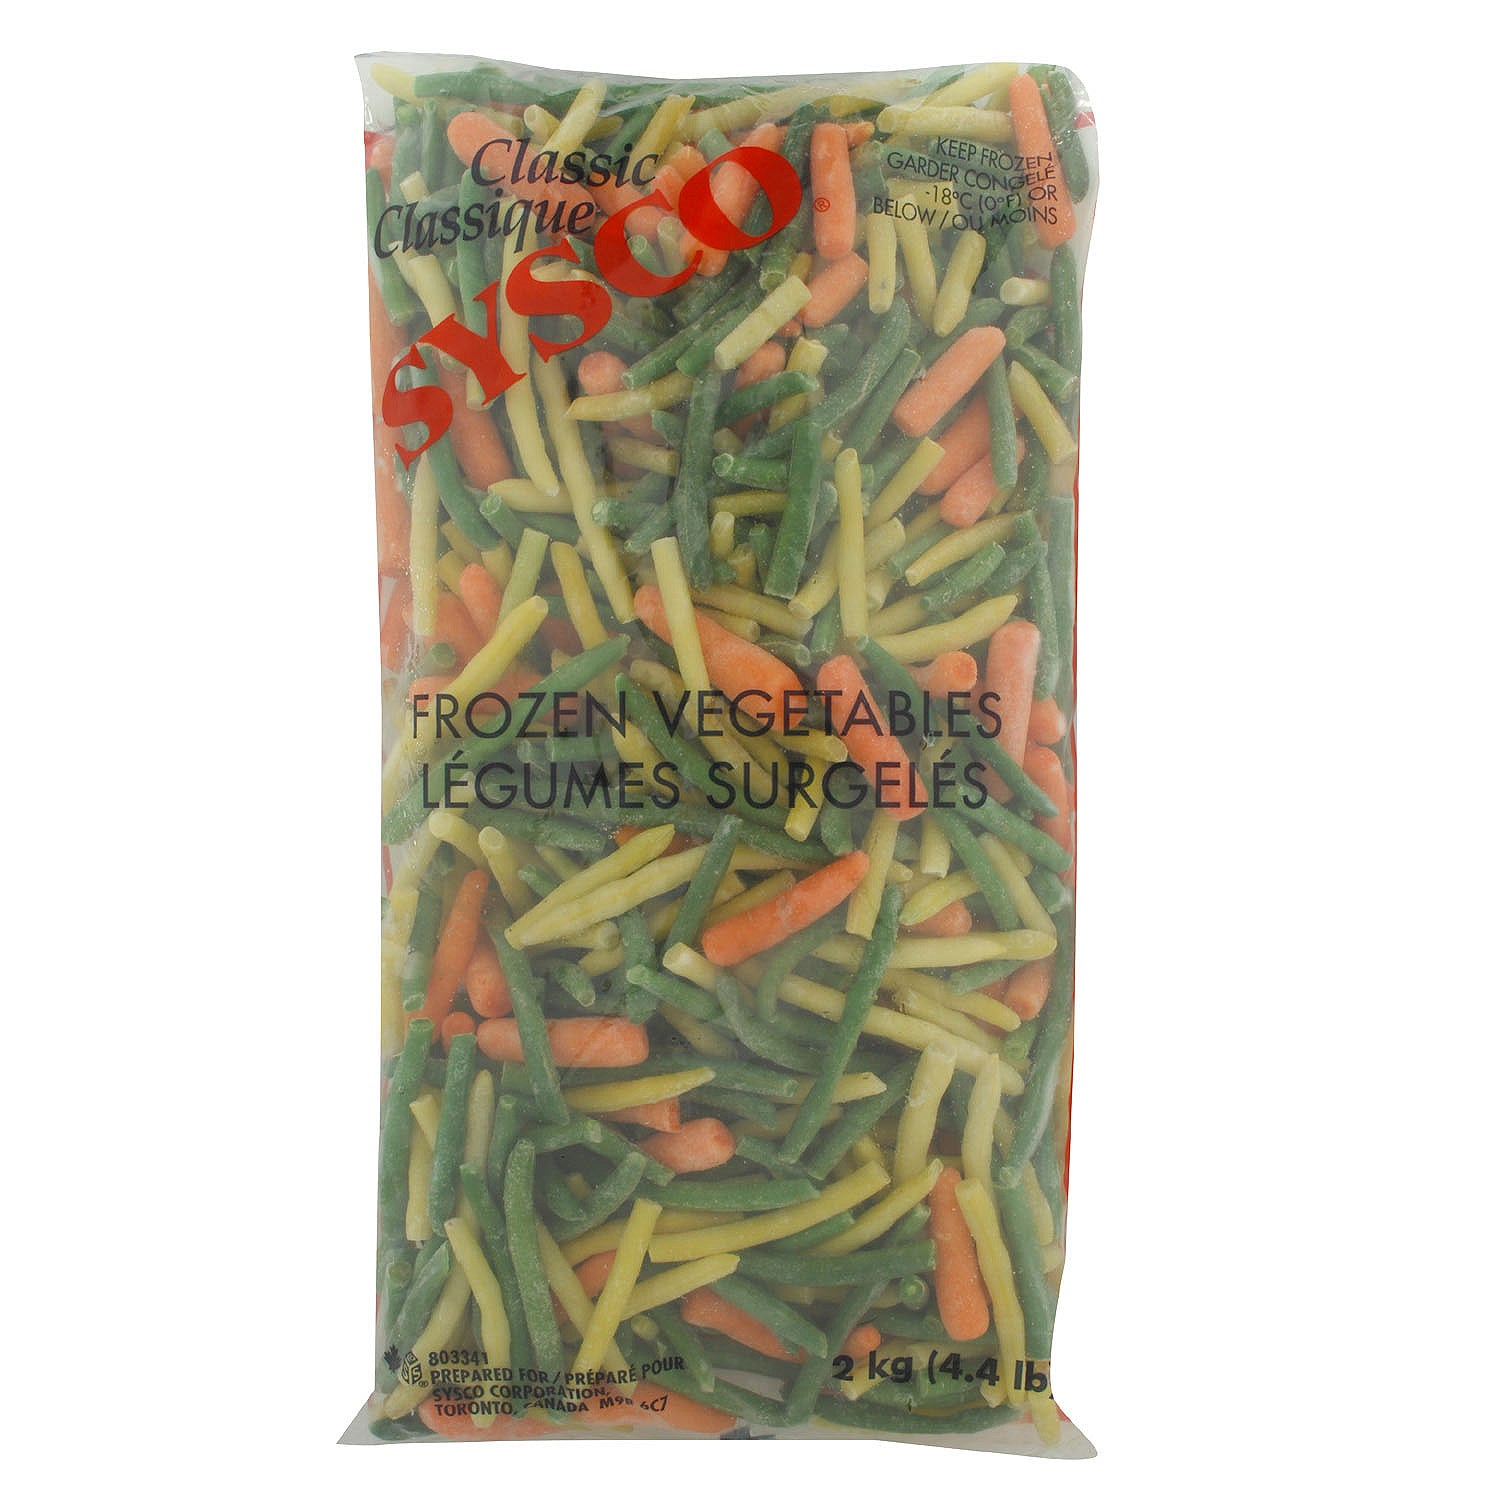 Sysco Classic Frozen Prince Edward Blend Mixed Vegetables (Green Beans/Yellow Beans/Baby Carrots) 2 kg - 6 Pack [$3.67/kg]